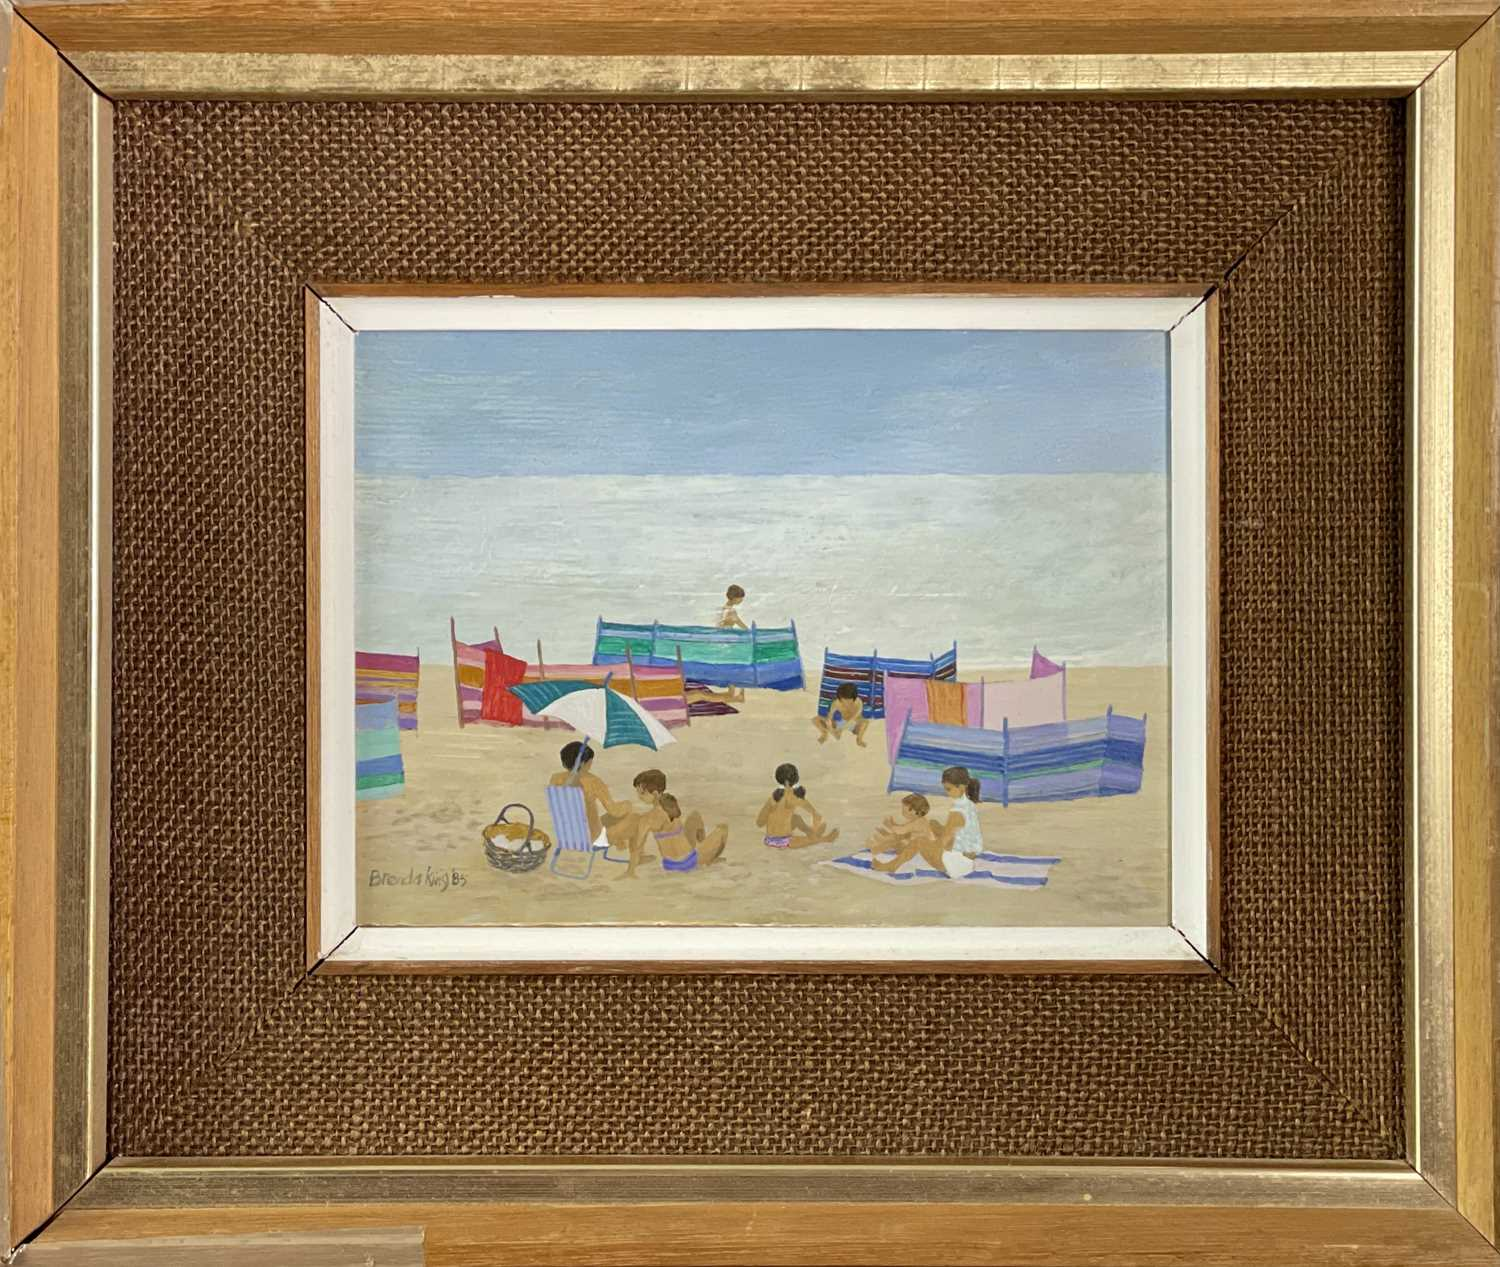 Brenda KING (1934-2011) Windbreaks, Porthmeor Oil on board Signed and dated 1985 15x20.5cm - Image 2 of 3